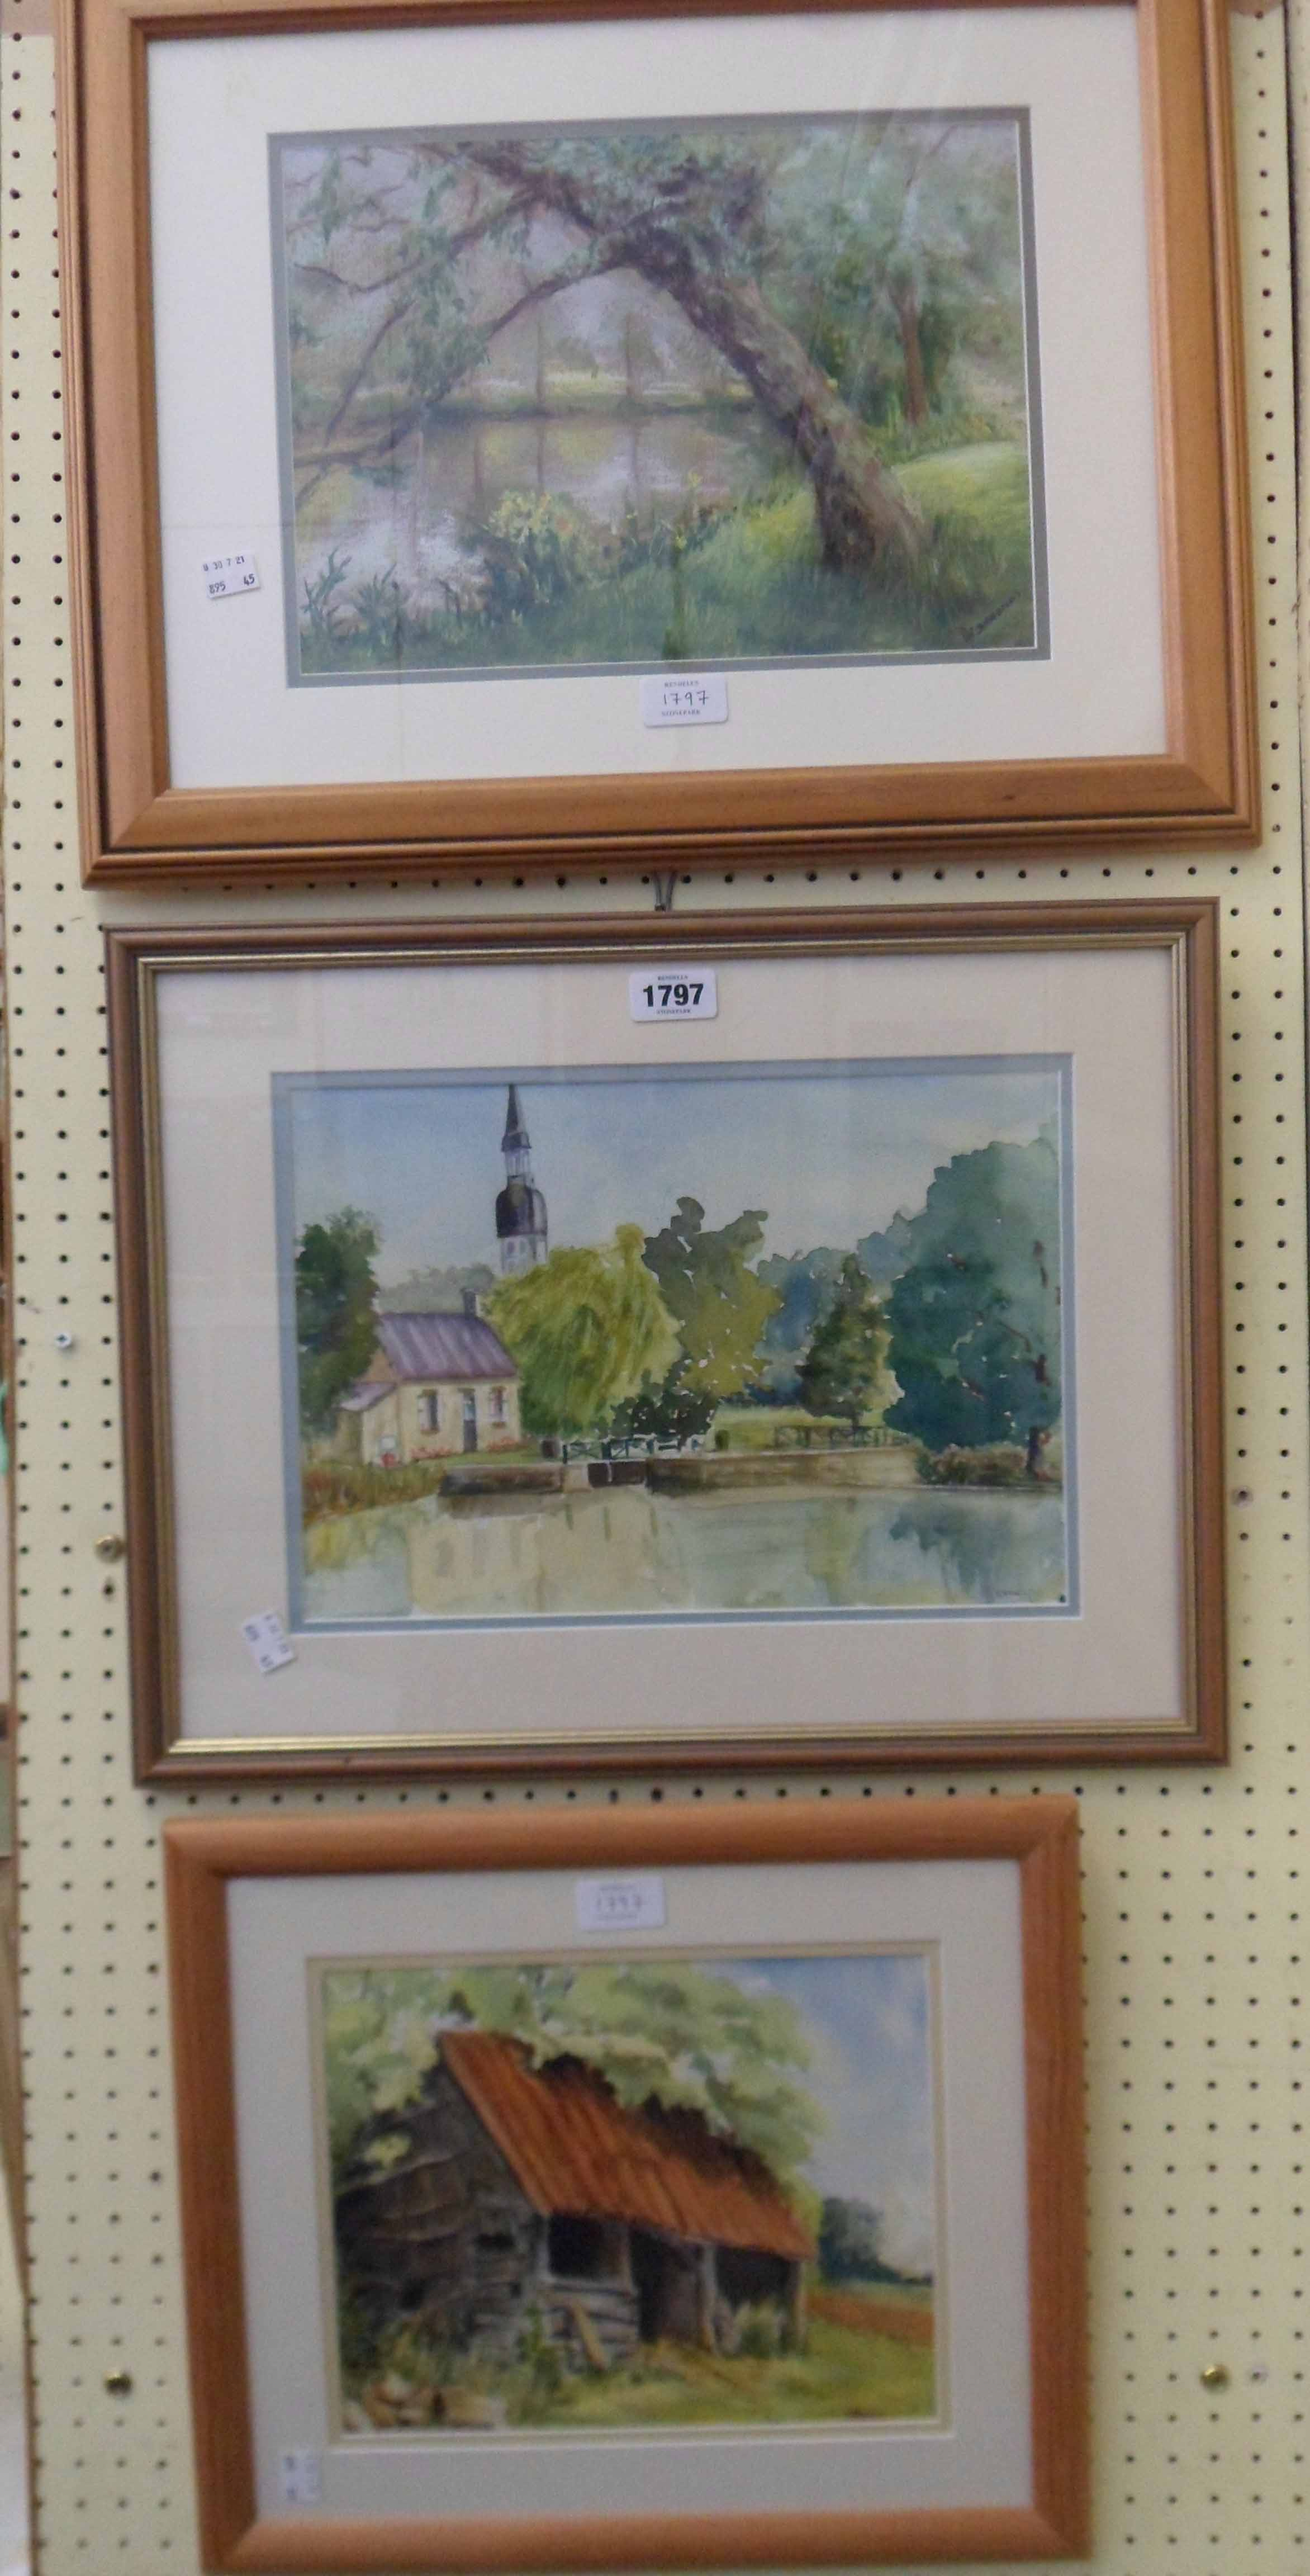 Pat Simmonds: three framed original works comprising two watercolours entitled The Old Barn and